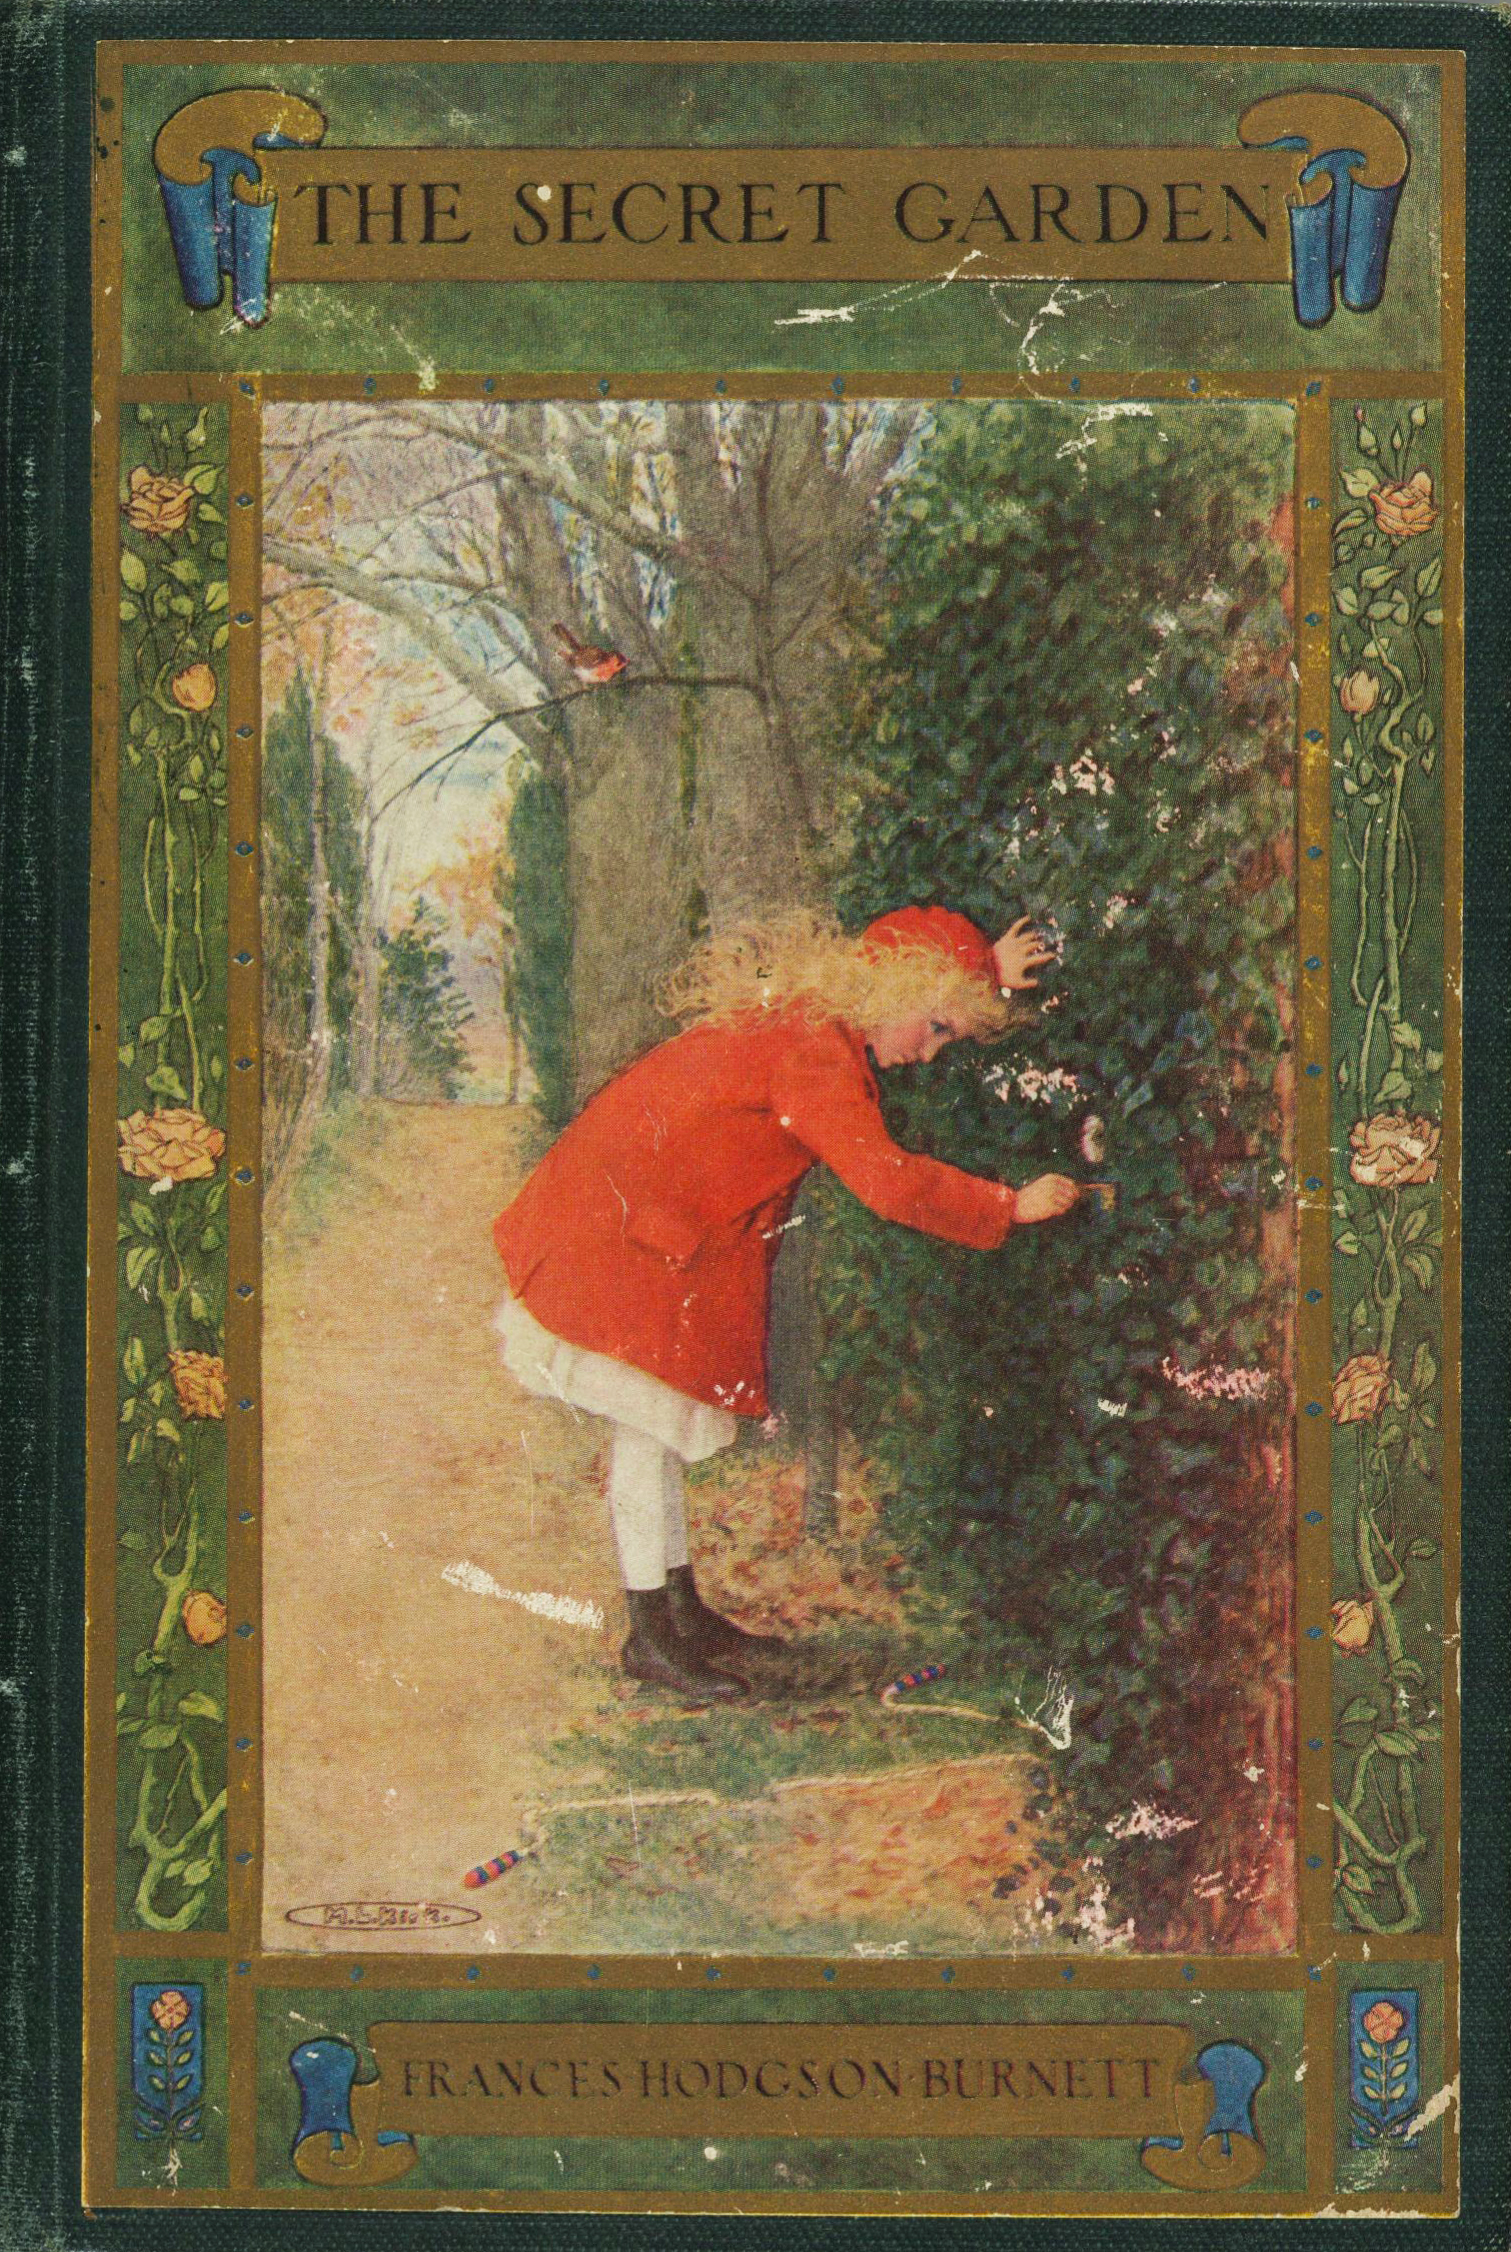 Houghton_AC85_B9345_911s_-_Secret_Garden,_1911_-_cover